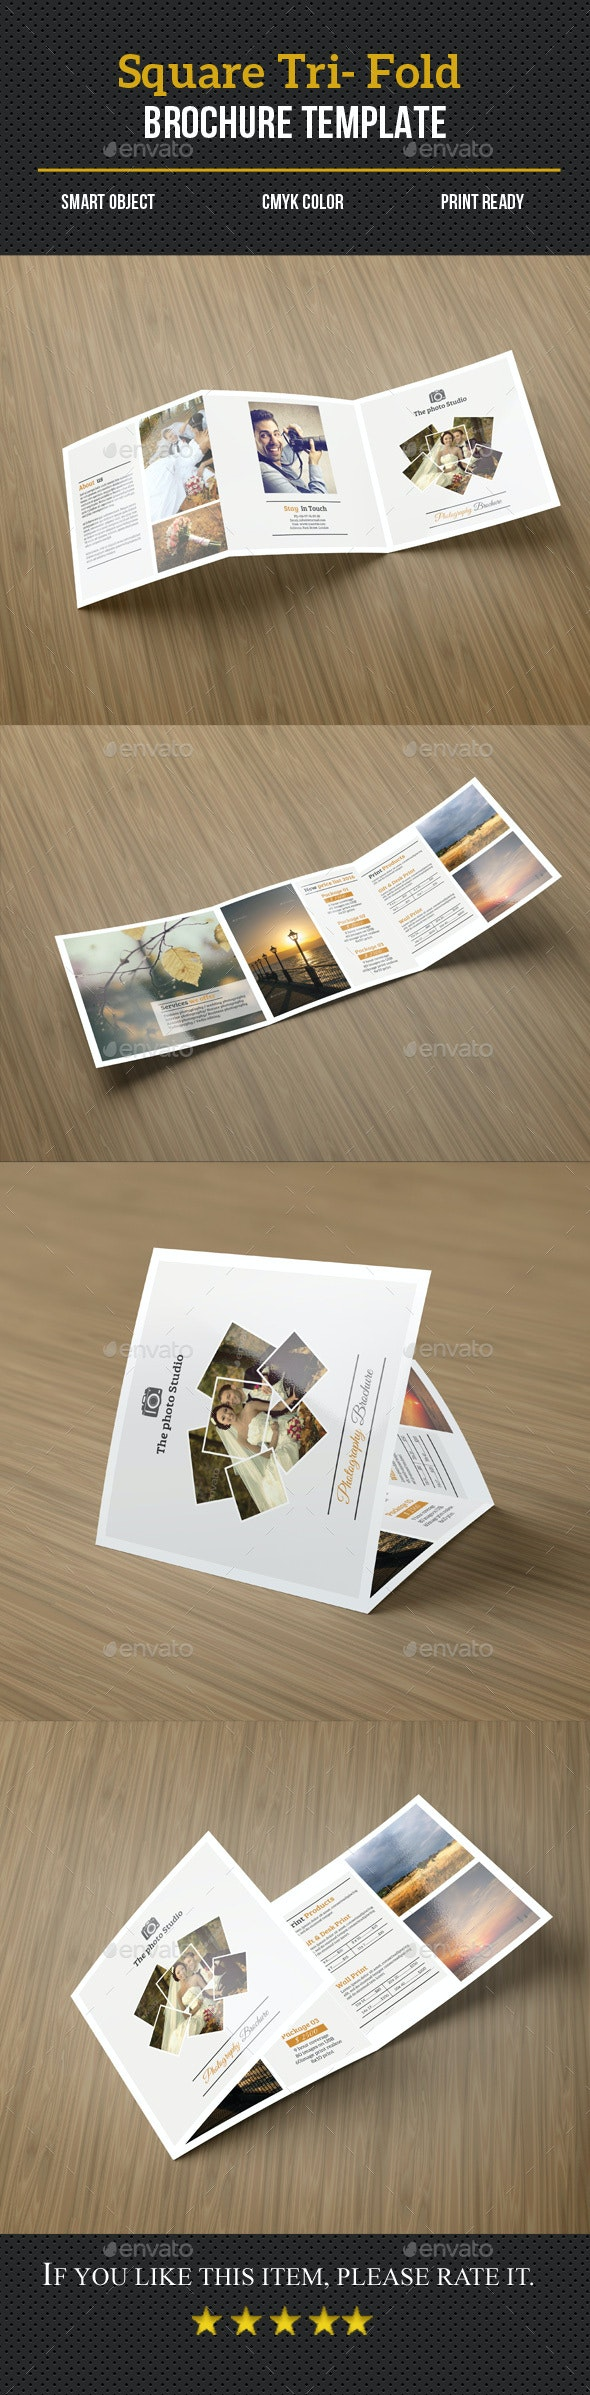 Photography Pricing List Brochure - Corporate Brochures